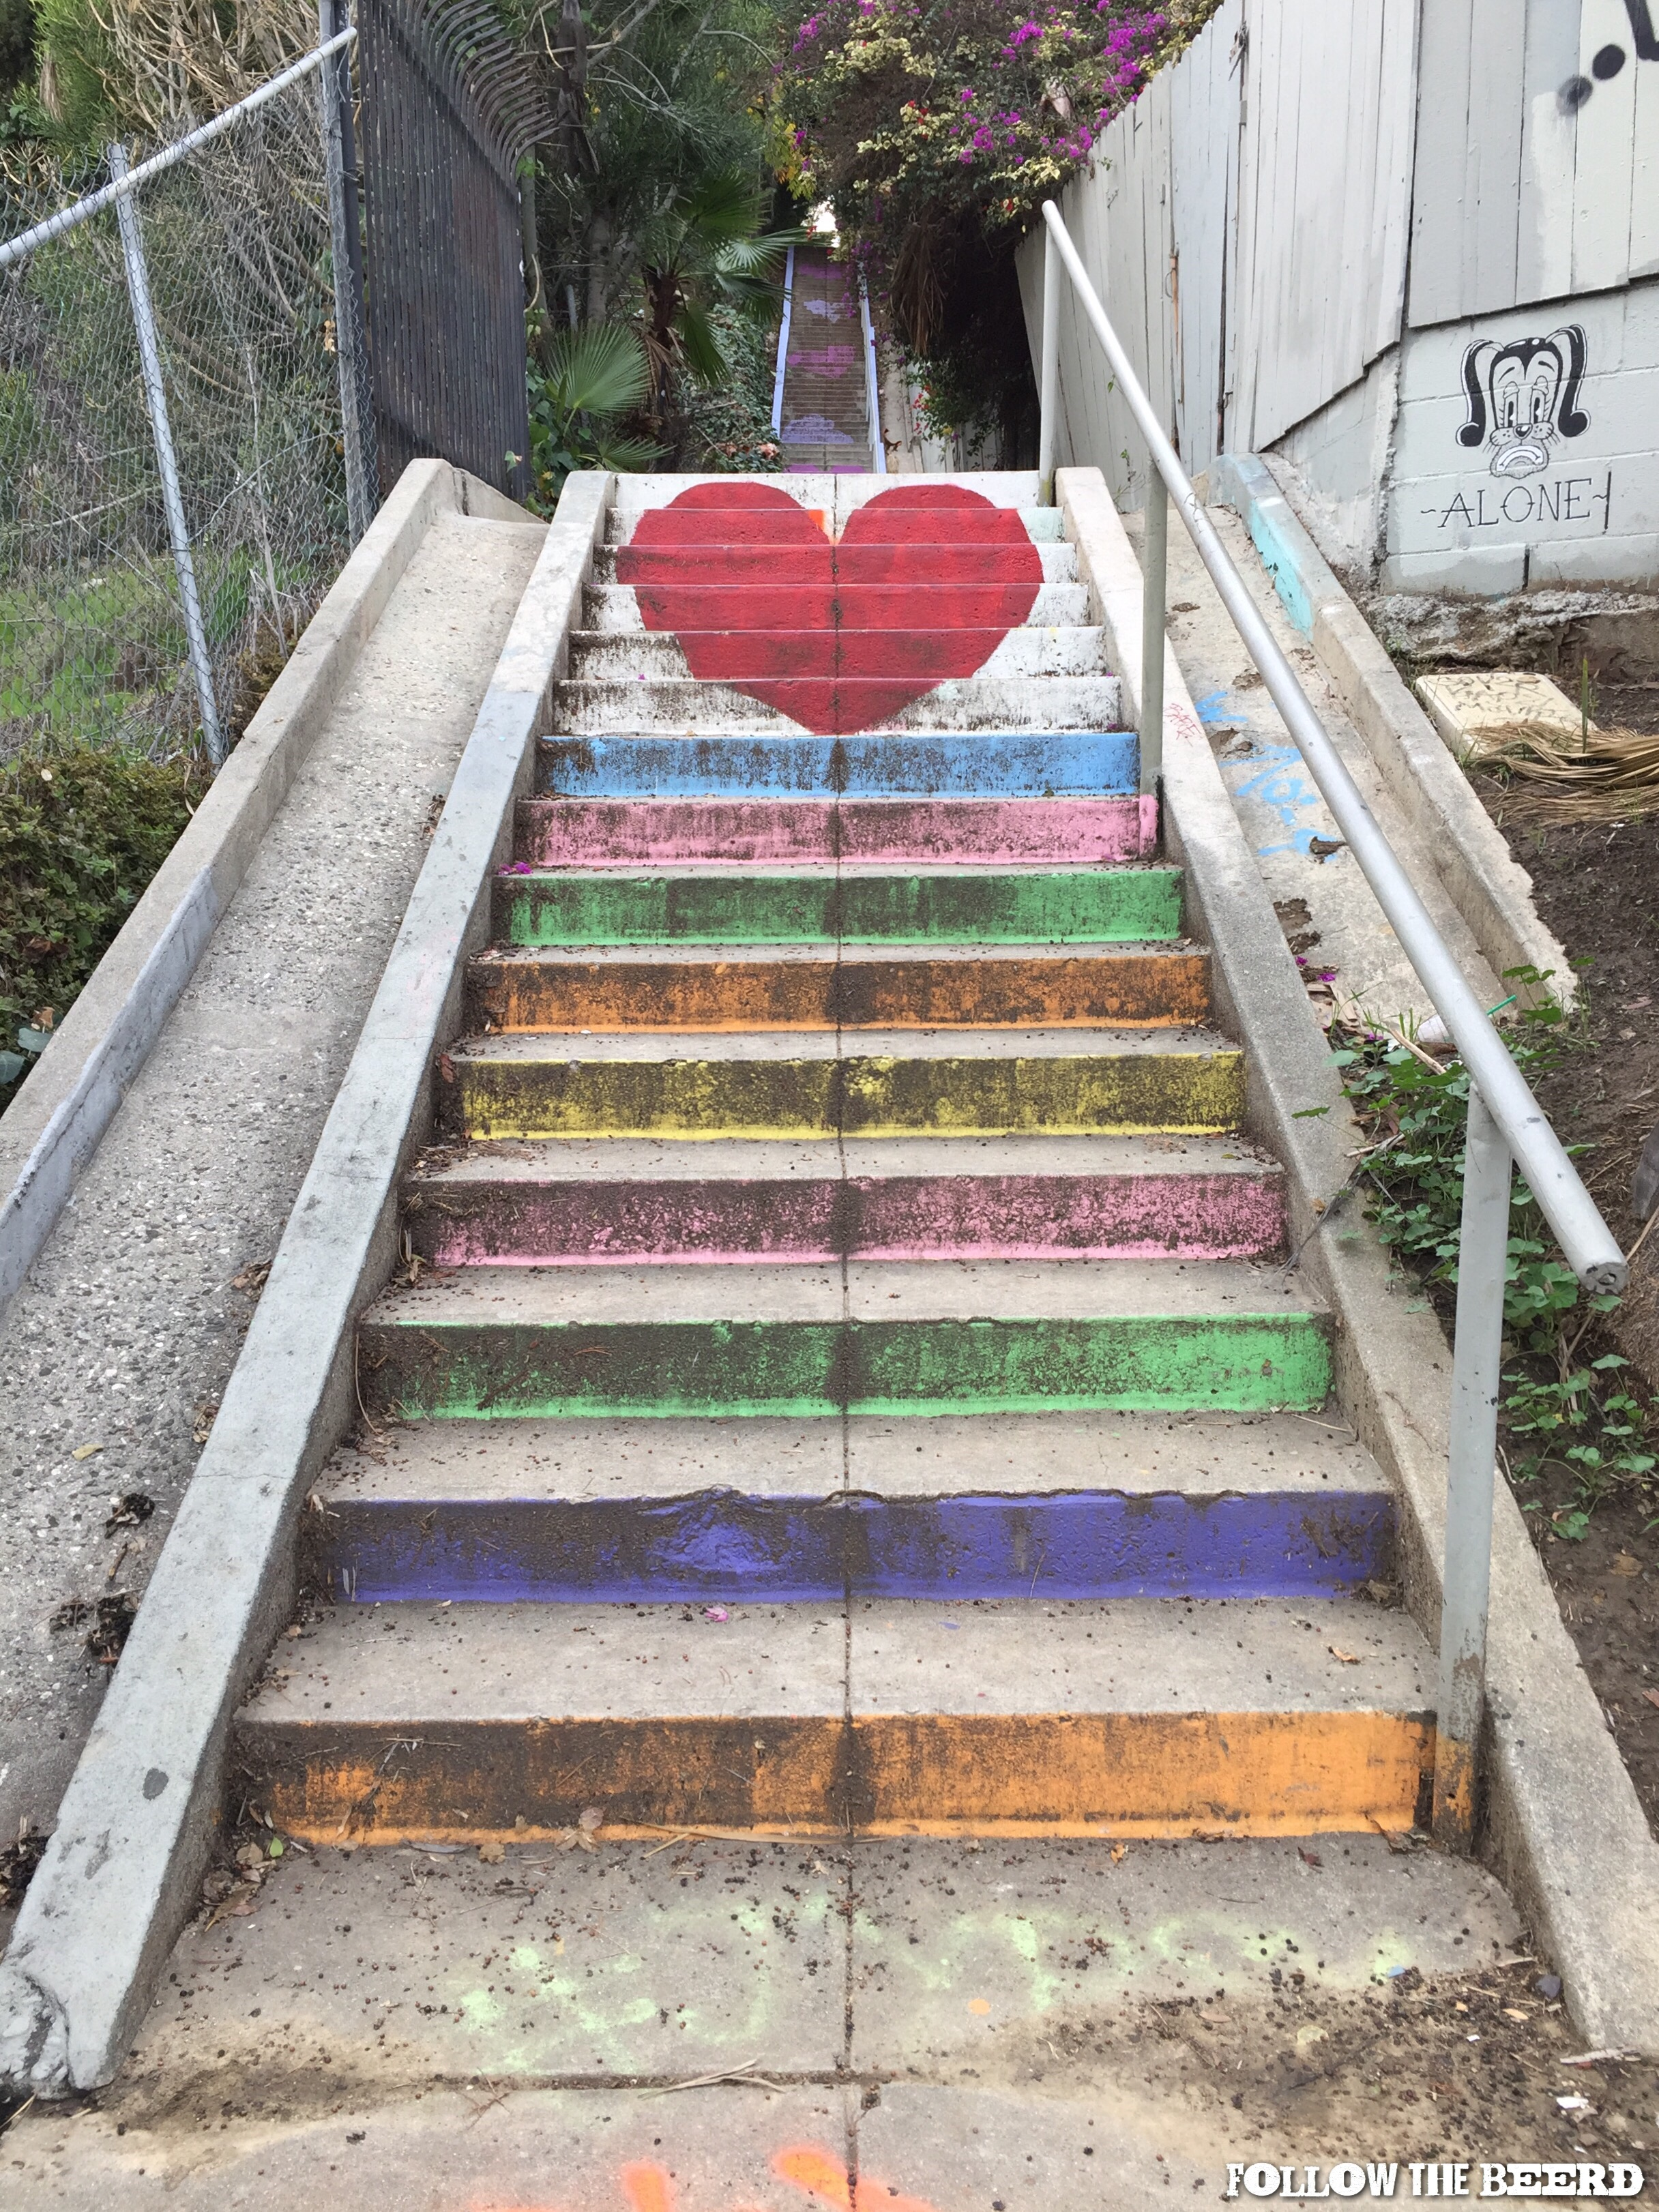 Painted In April 2015 By Artists Corinne Carrey, Carla Ou0027Brien And Mandon  Bossi, Stair Candy And Blooming Hearts Is A Stoneu0027s Throw Away From The ...